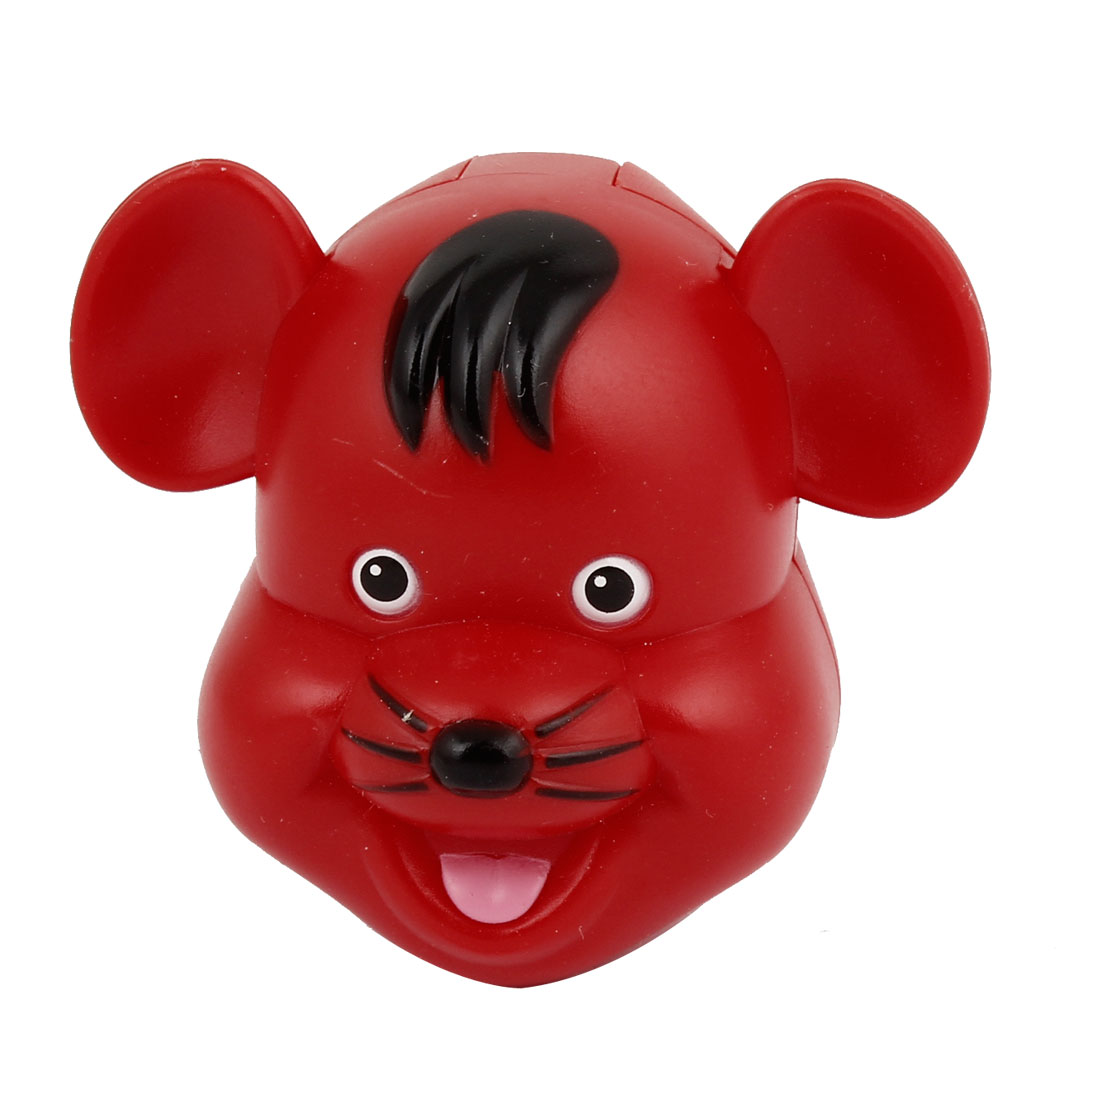 Bathroom Red Plastic Mouse Design Suction Toothbrush Holder Case